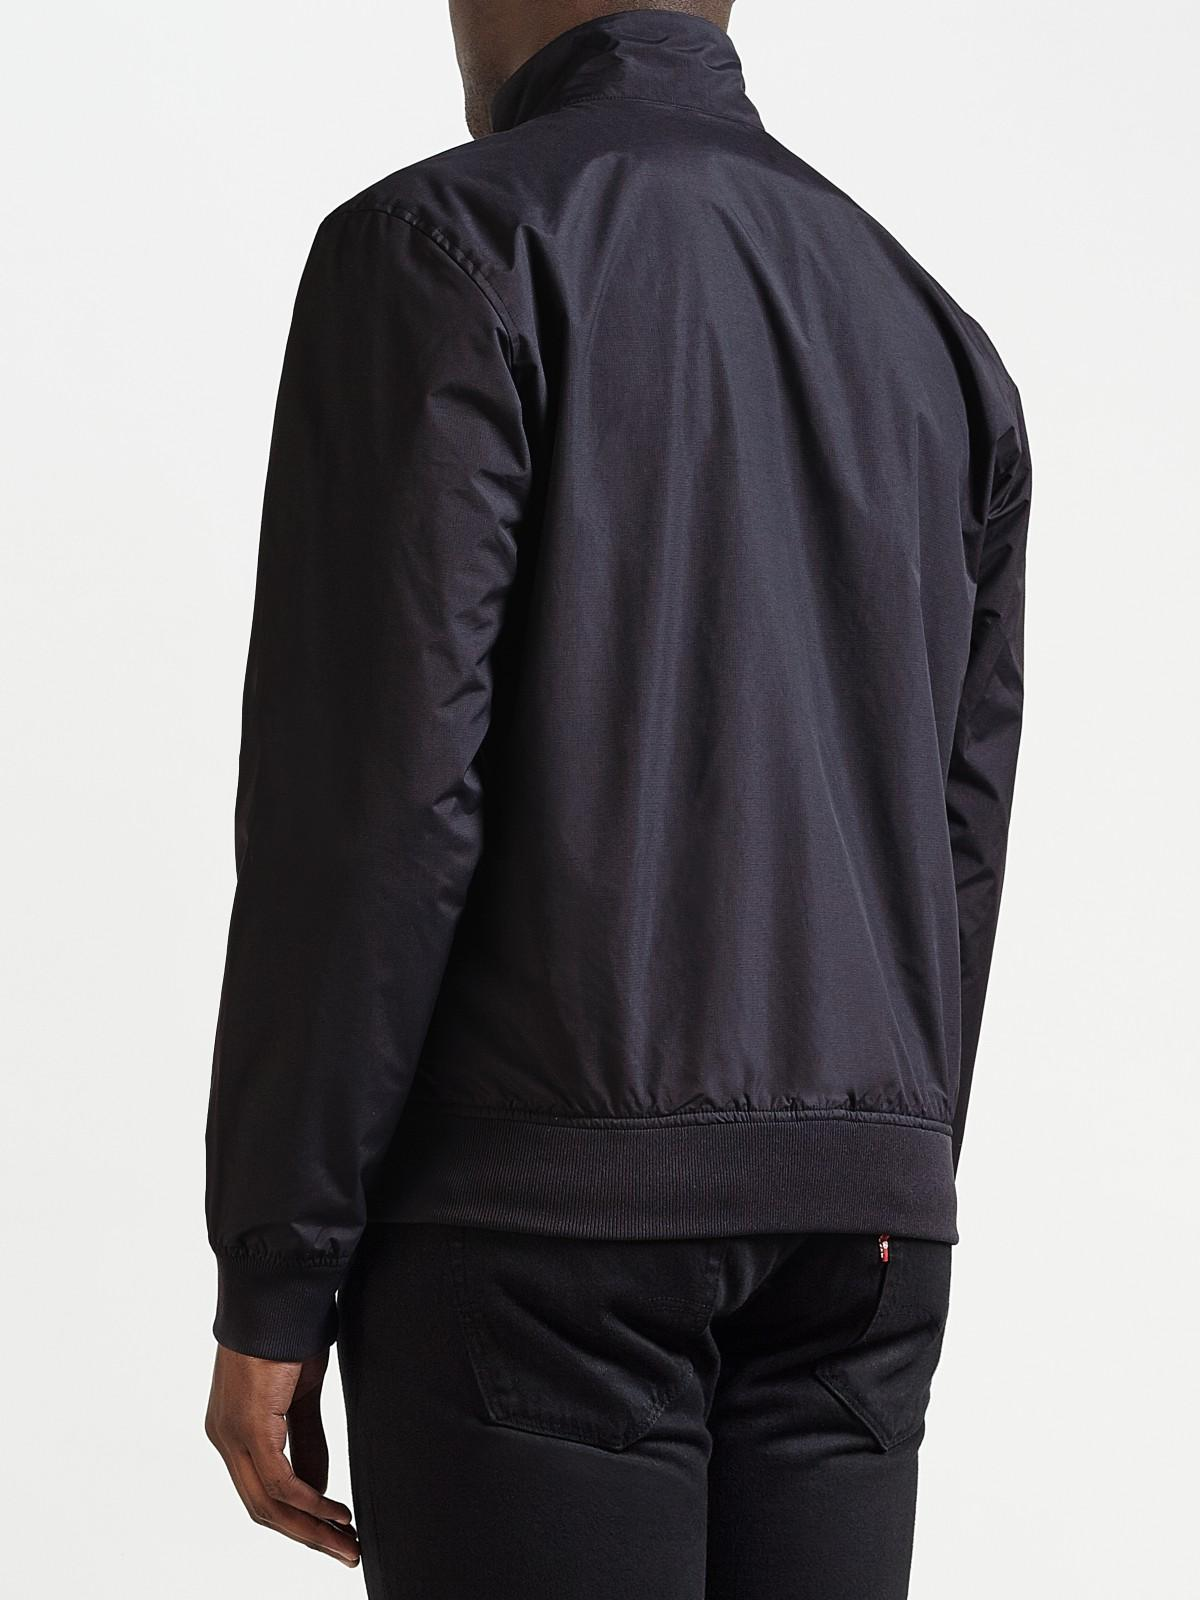 Fred Perry Brentham Jacket in Navy (Black) for Men